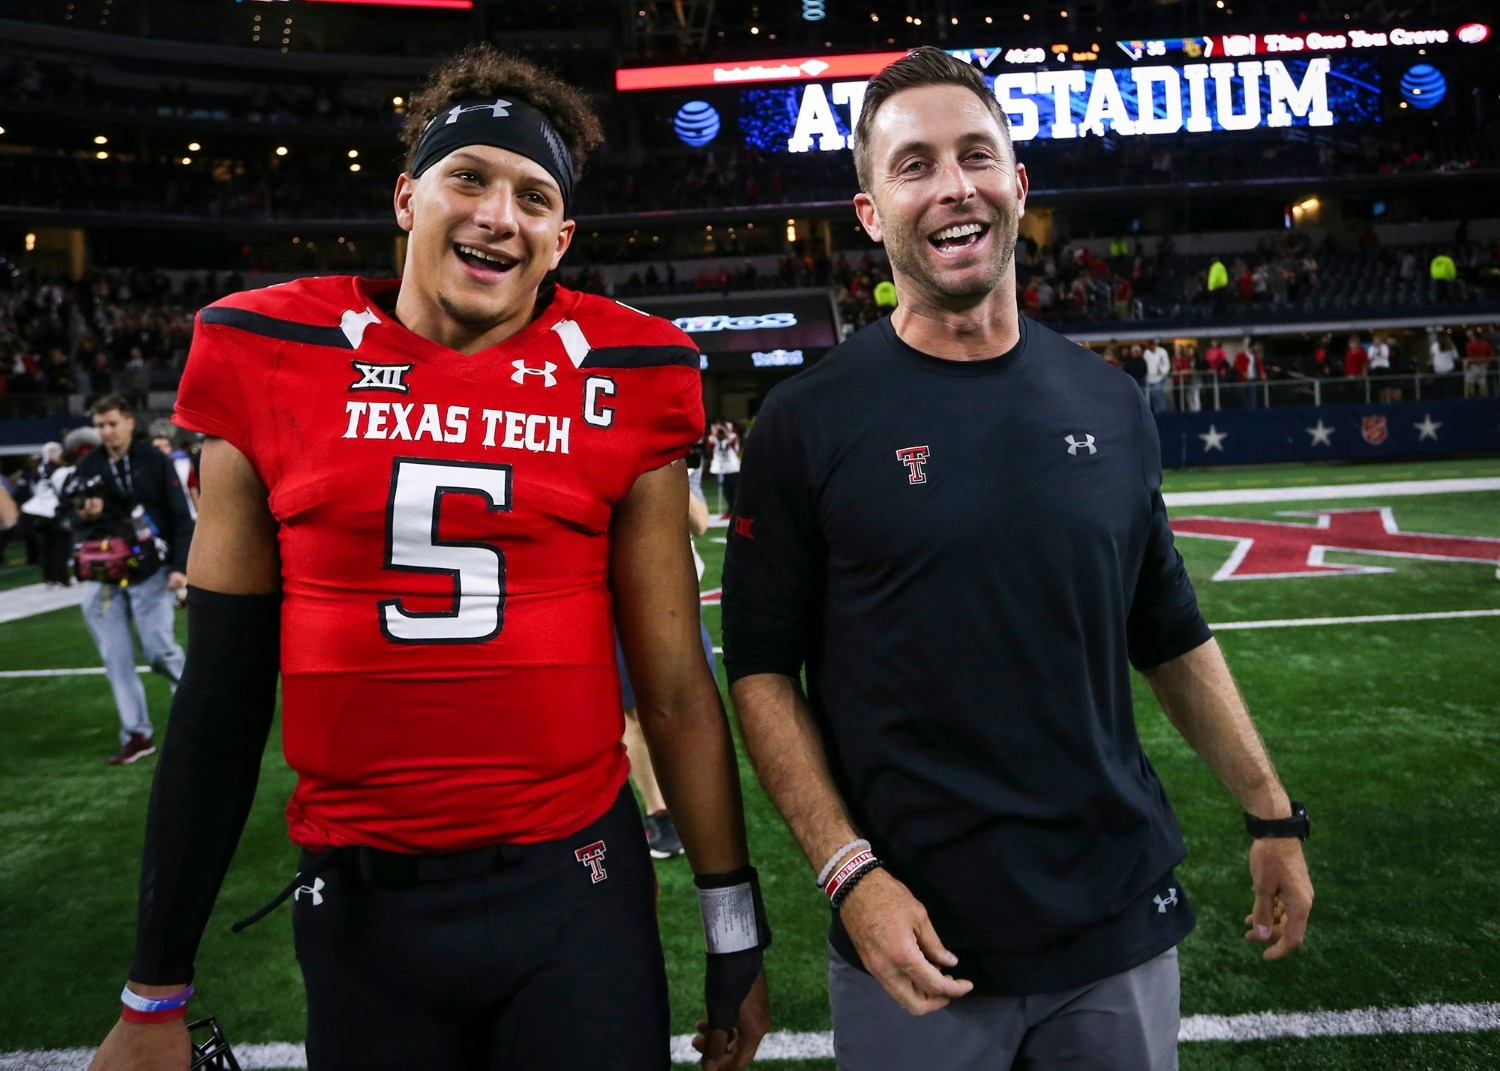 Patrick Mahomes made Kliff Kingsbury look like Nostradamus after signing a record-breaking contract on Monday.